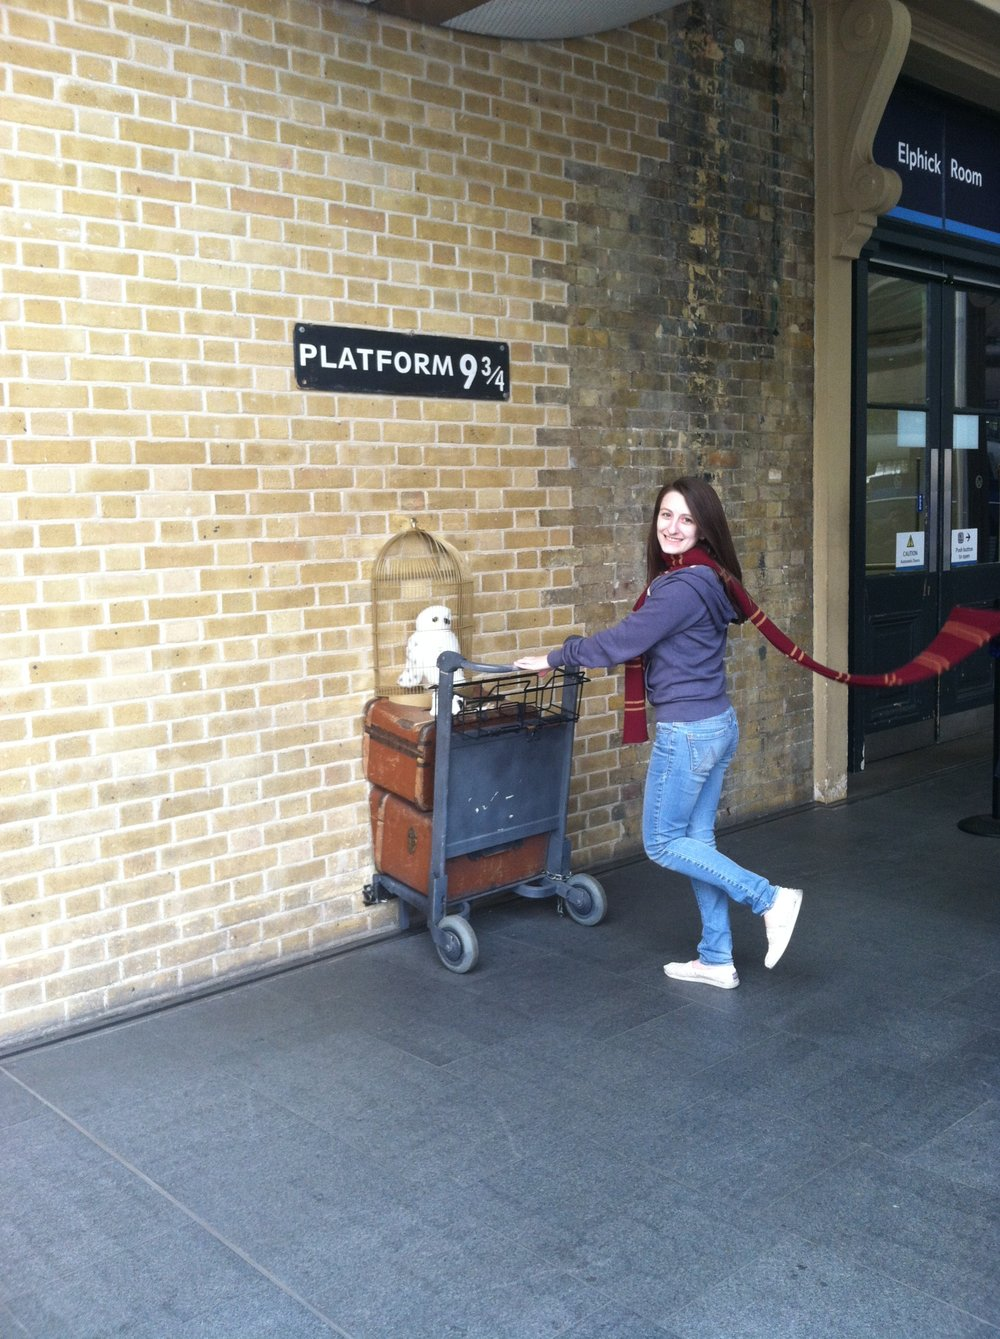 Entering Platform 9 3/4 at King's Cross Station